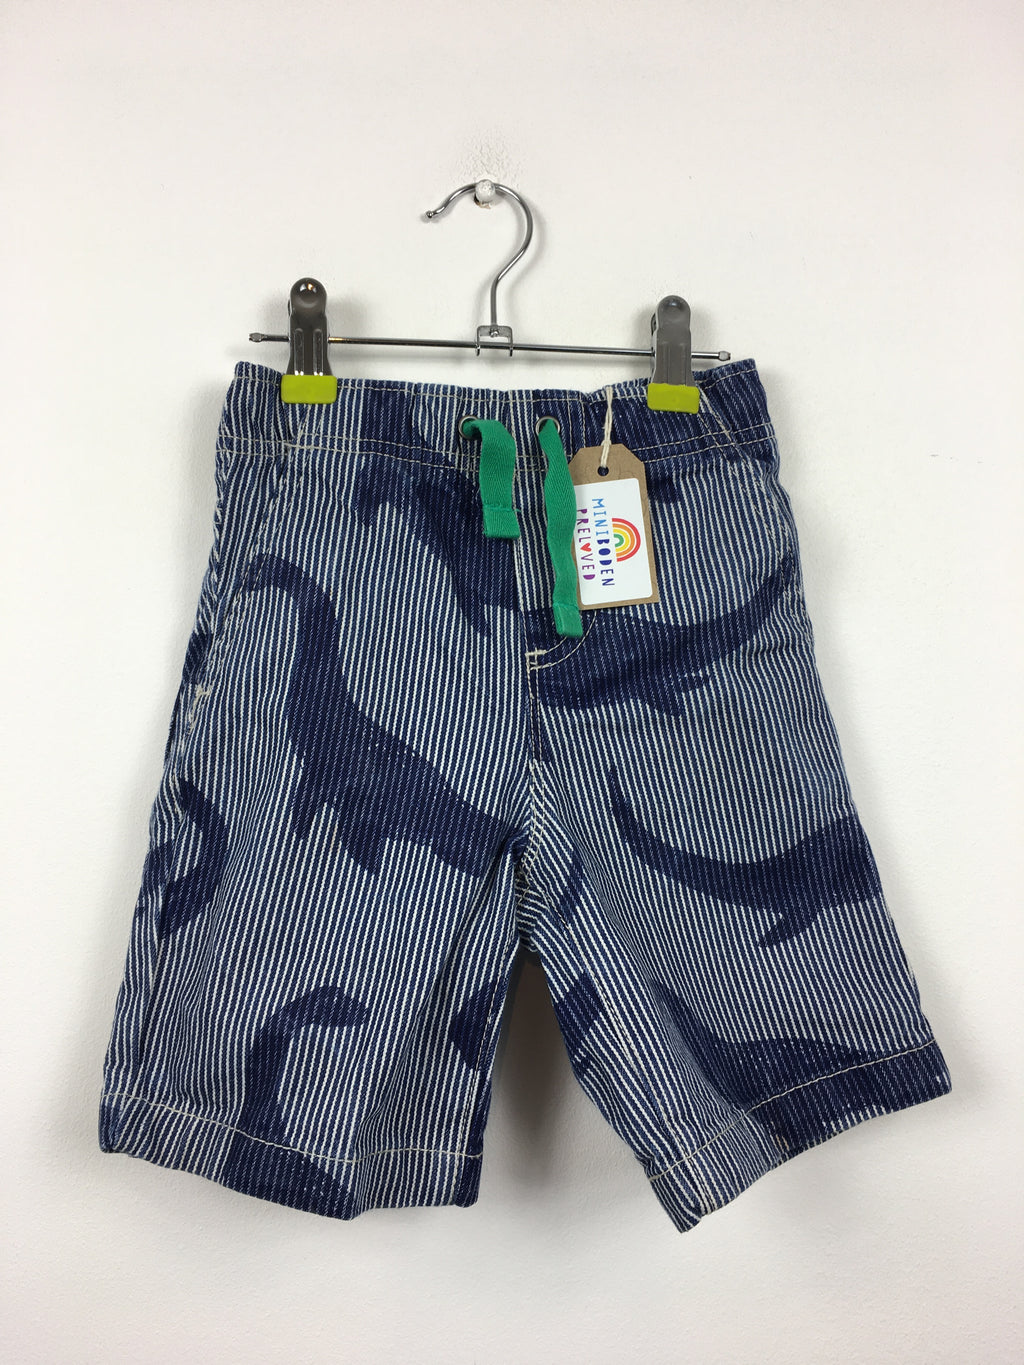 Nessie Print Blue Stripy Shorts (3 Years)